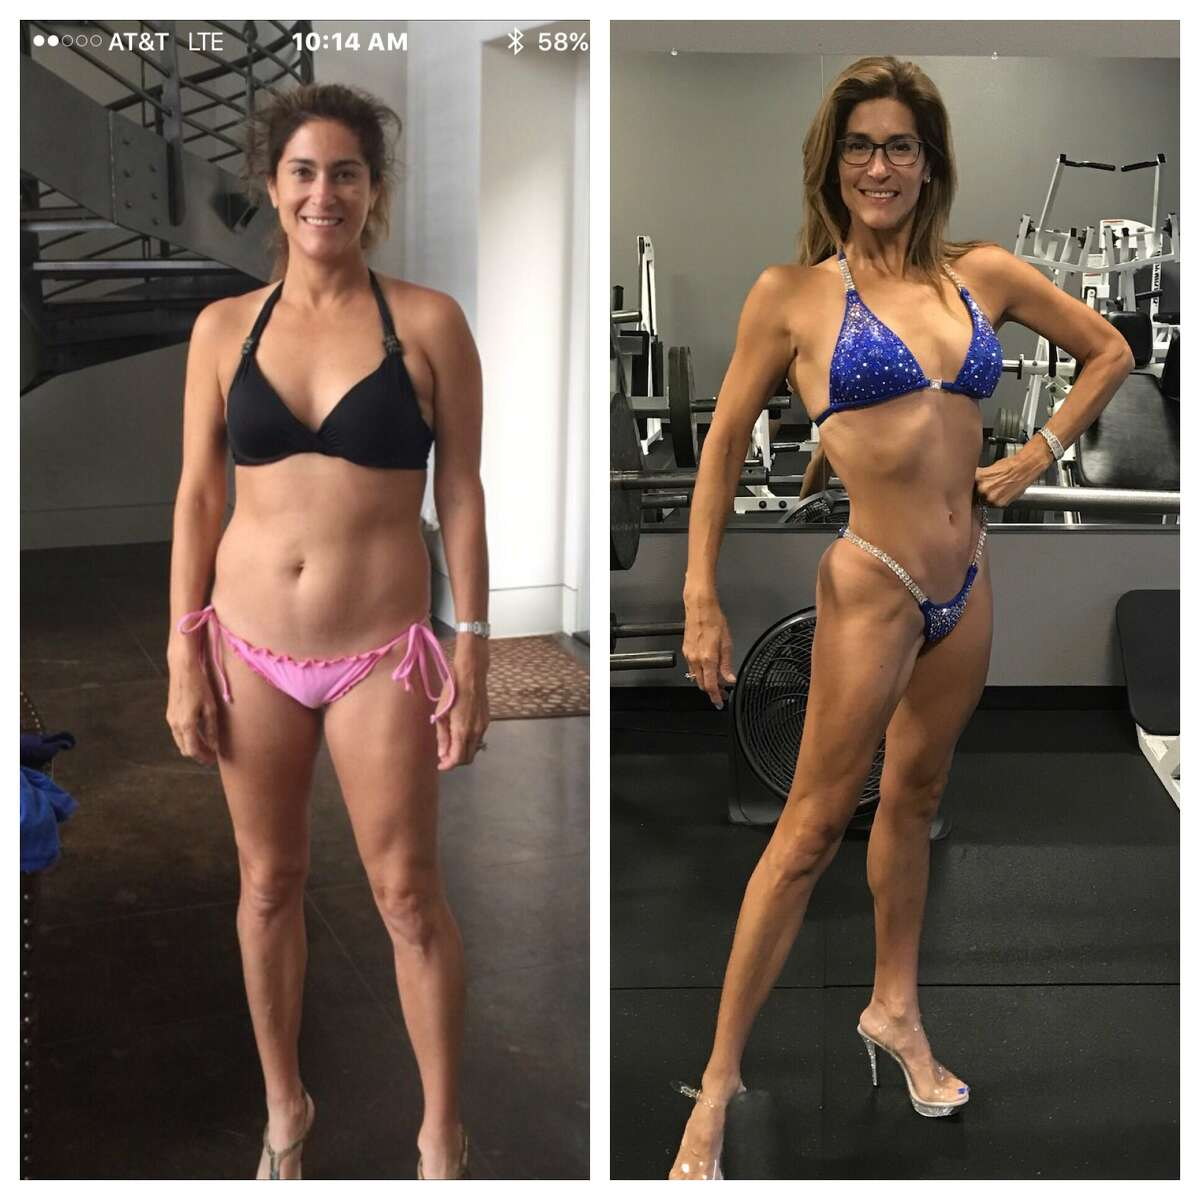 Last week, Sarah Lucero shared a drastic transformation photo showing what she looked like in February 2016 compared to July 2017. The